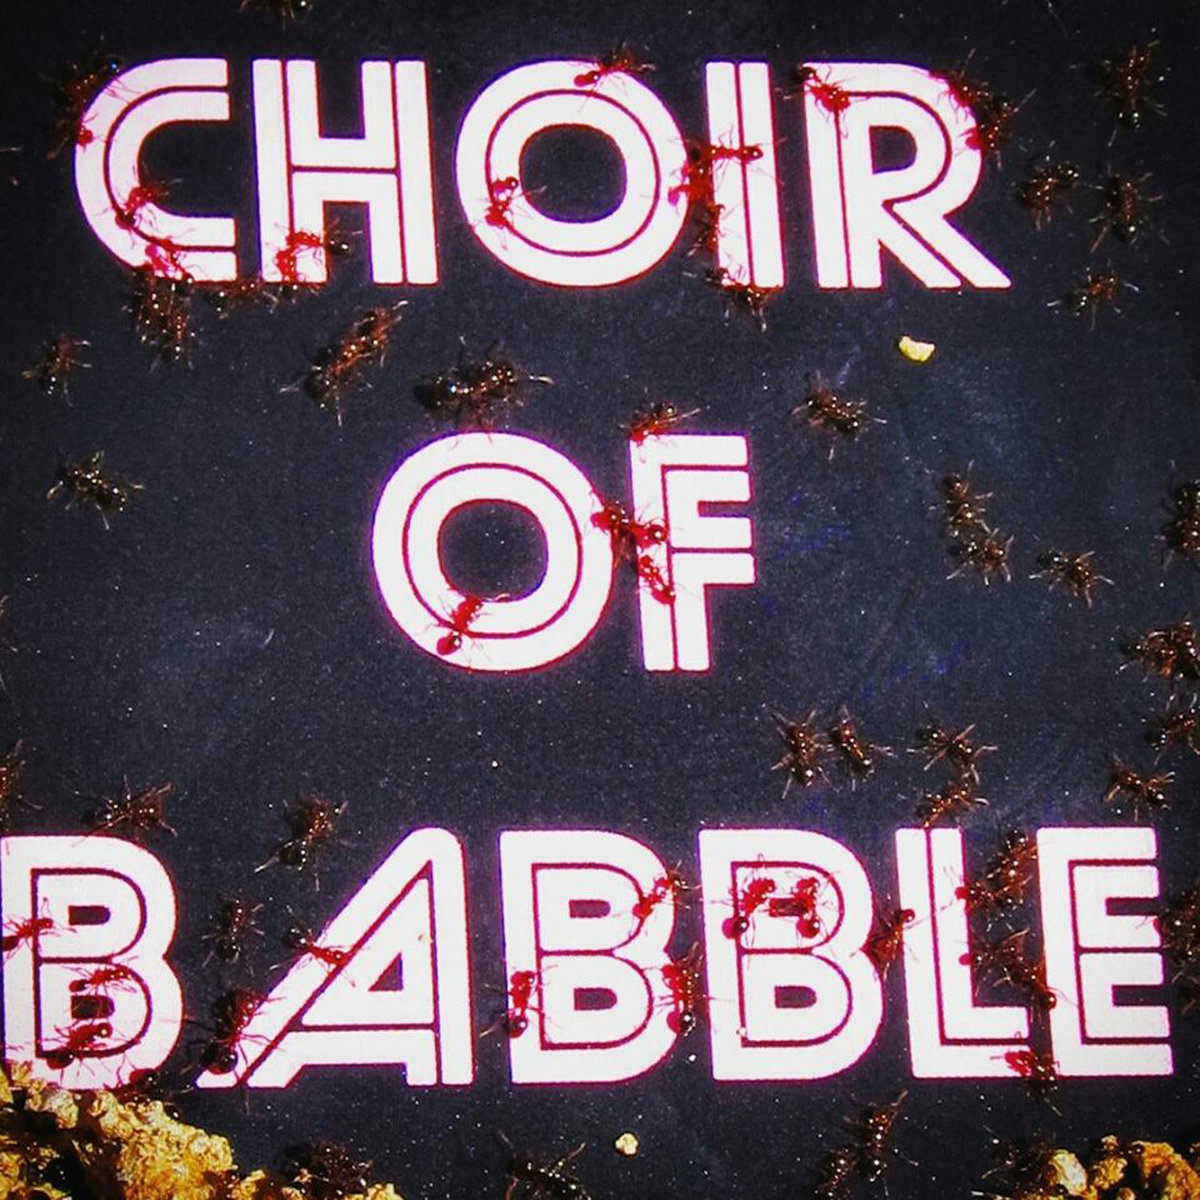 www.facebook.com/babblechoir